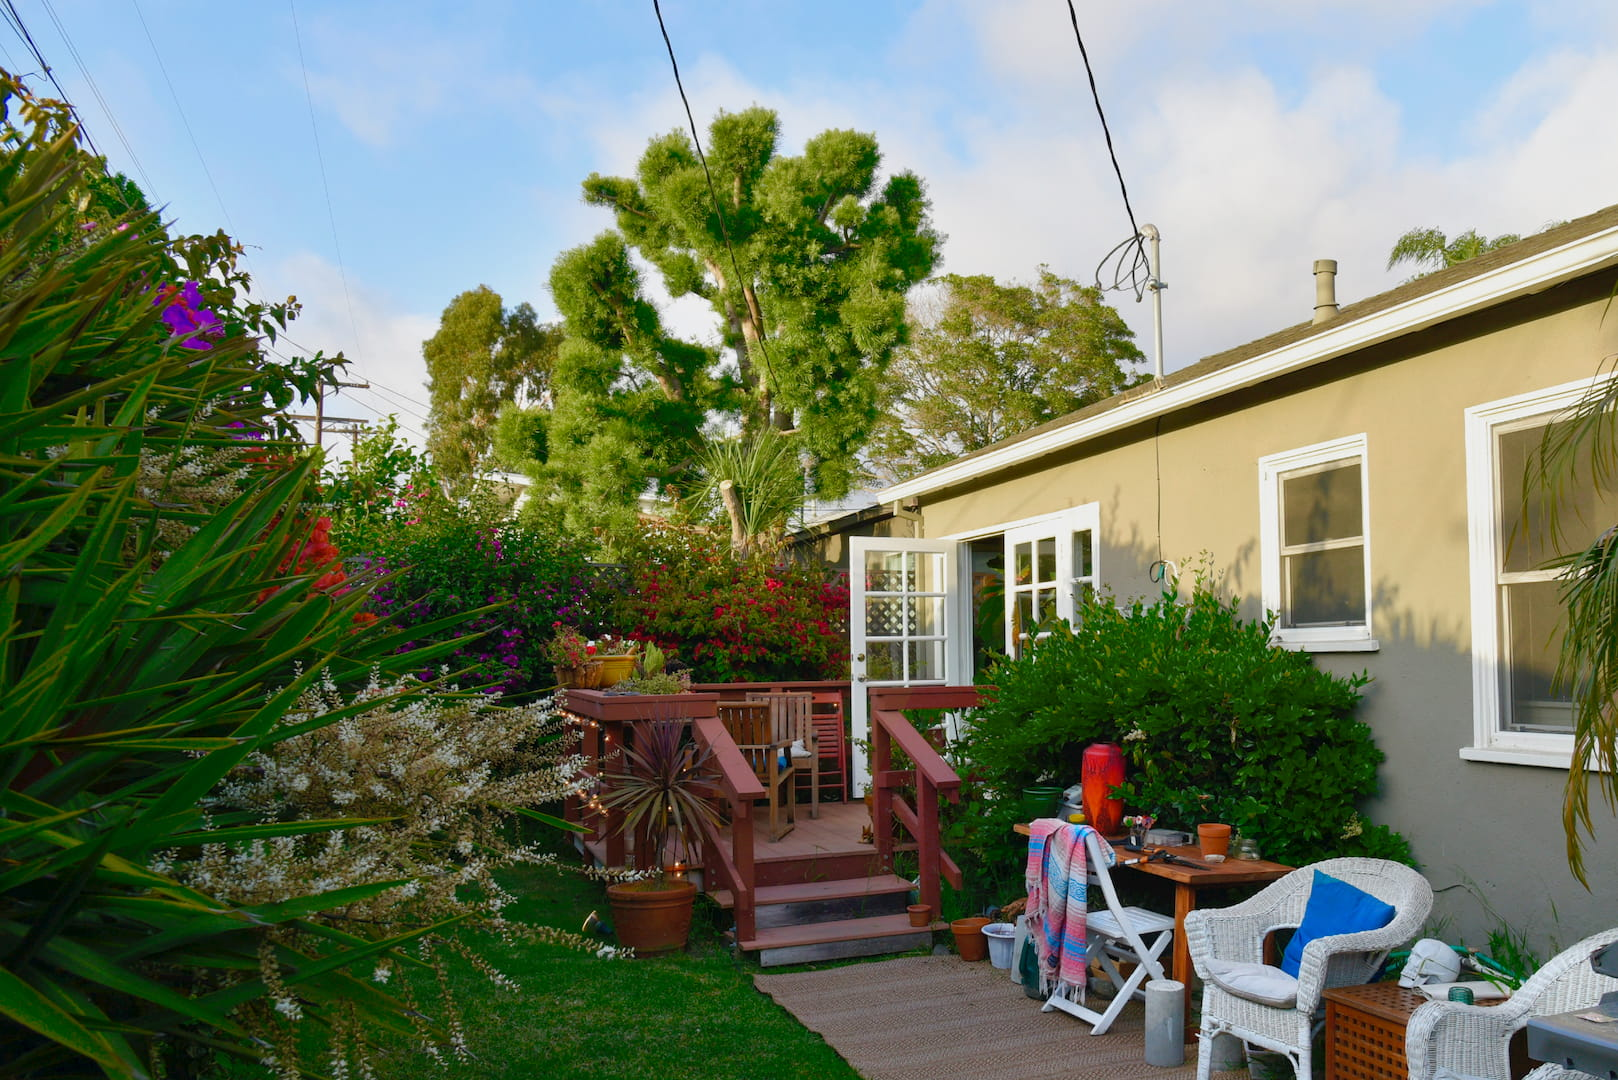 Affordable Venice Beach House with Tropical Plants (Los Angeles, CA)